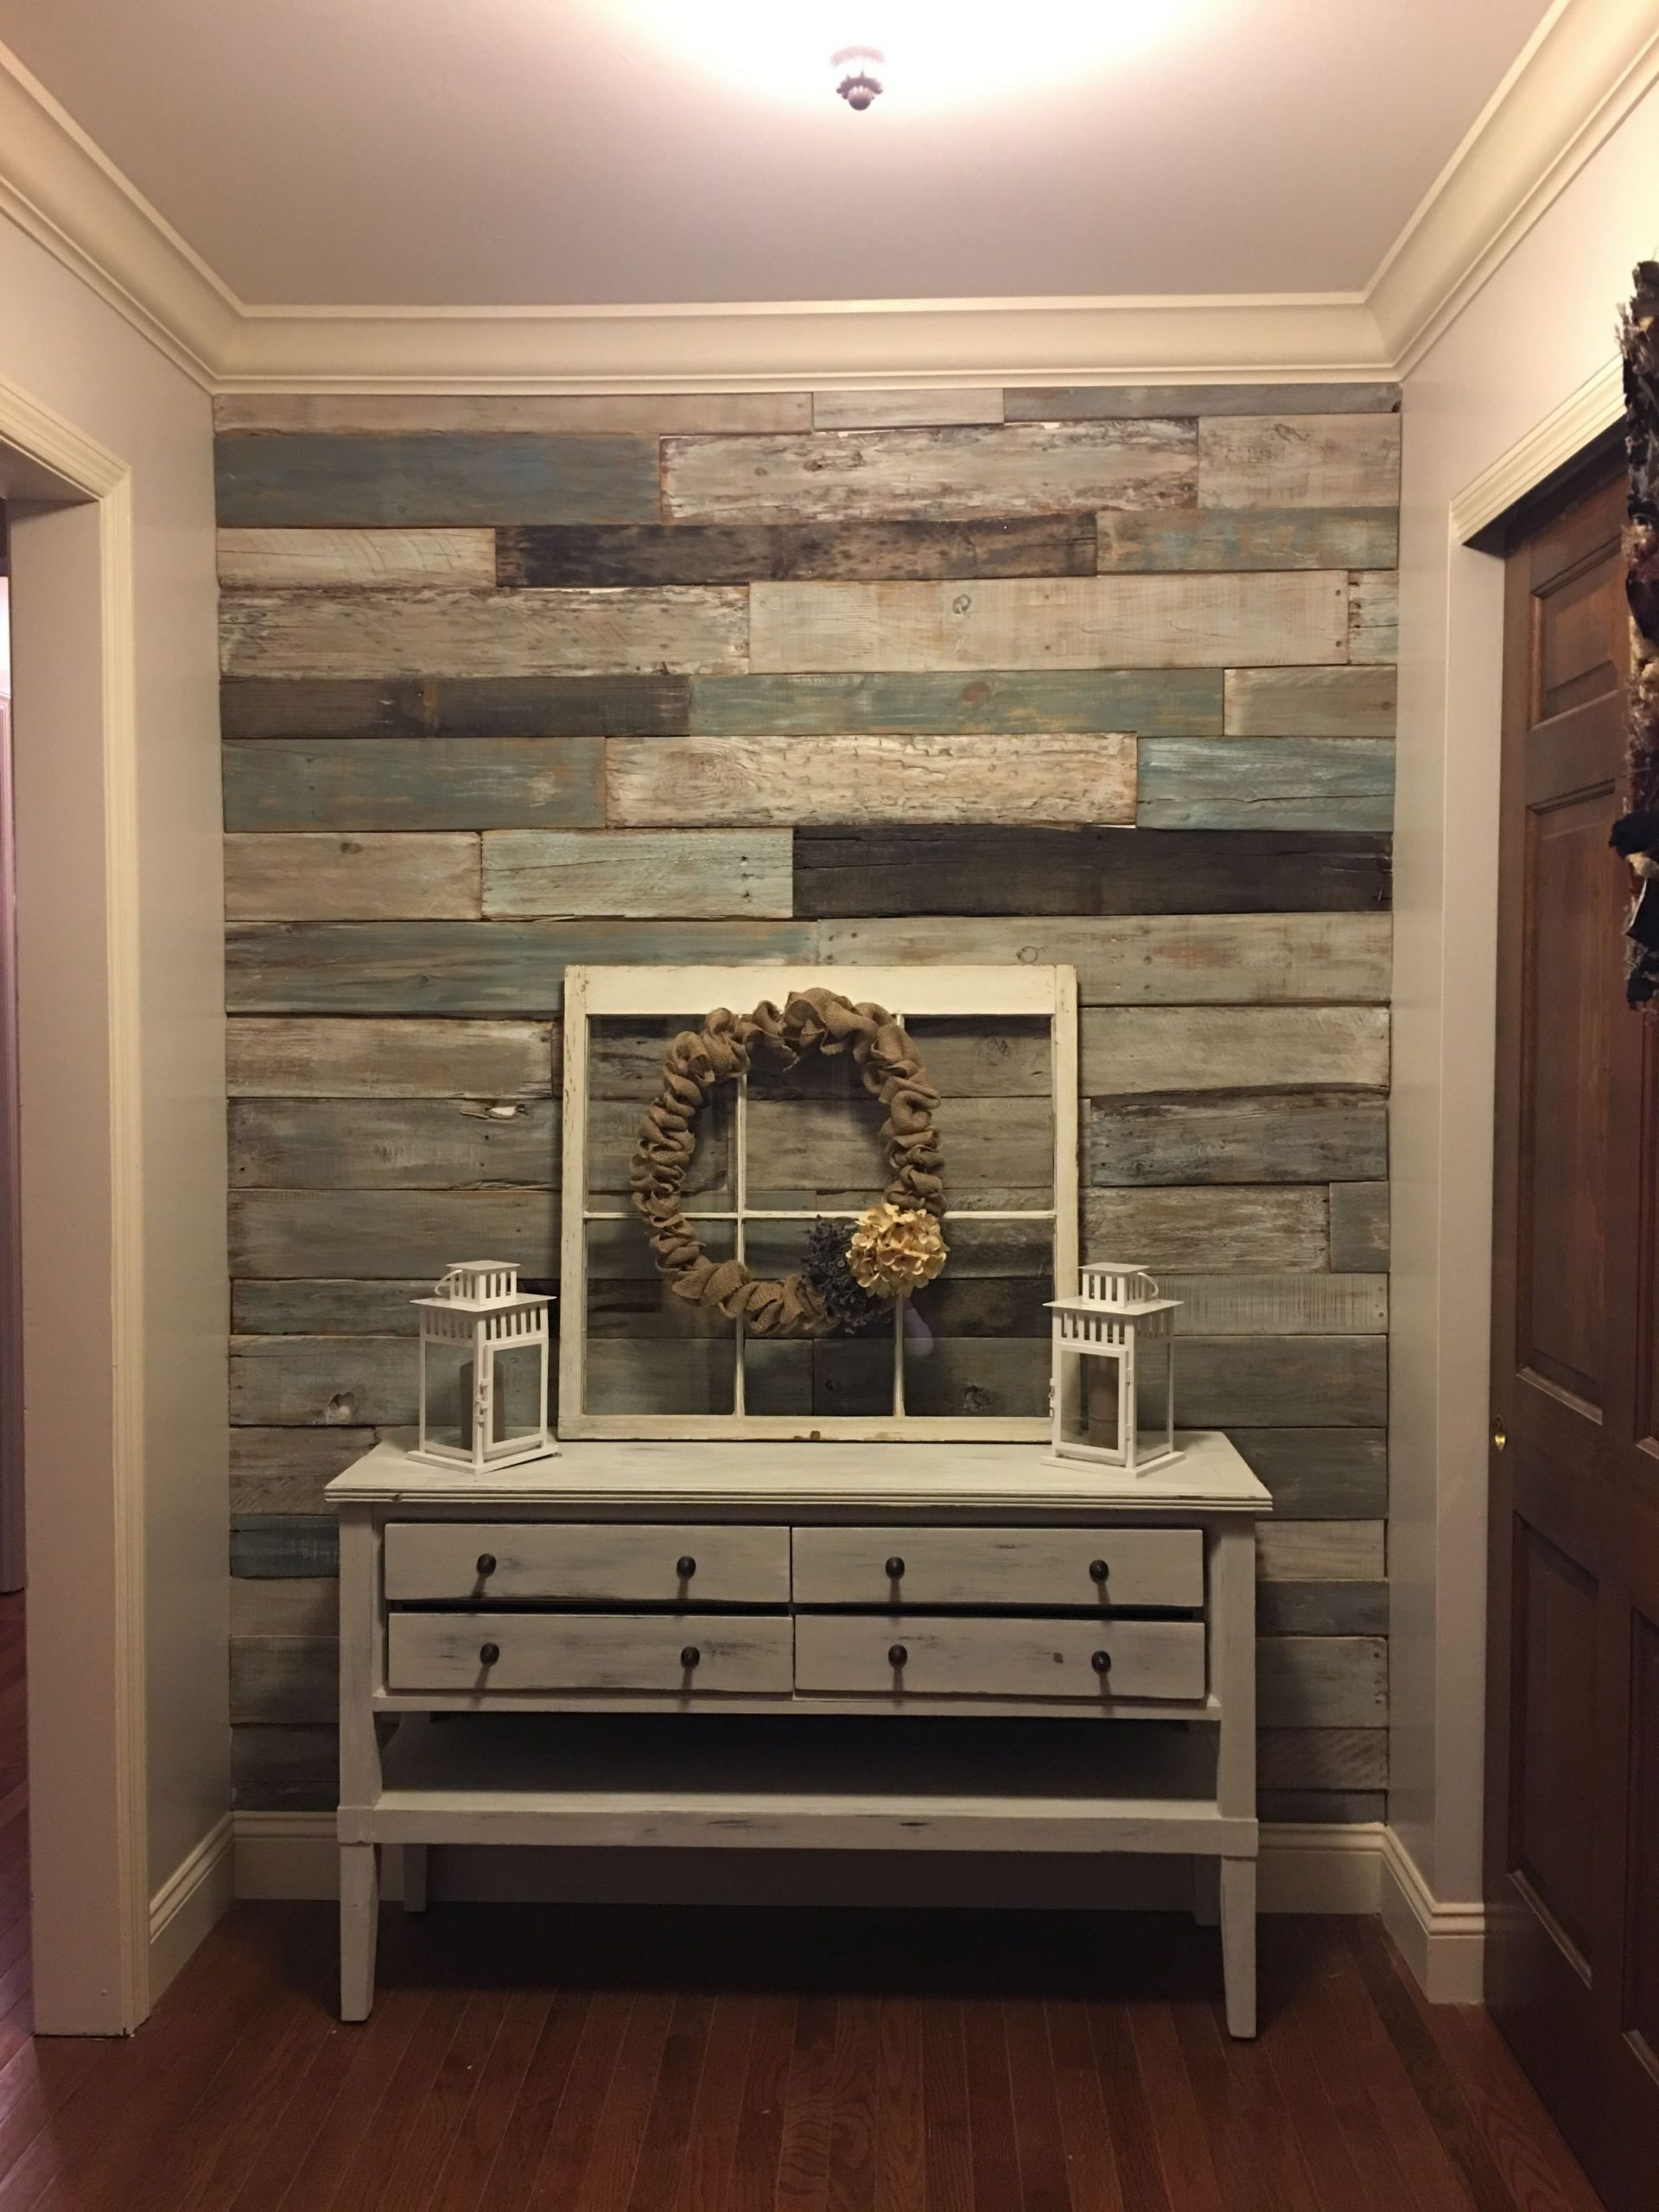 Nice pallet ideas for walls